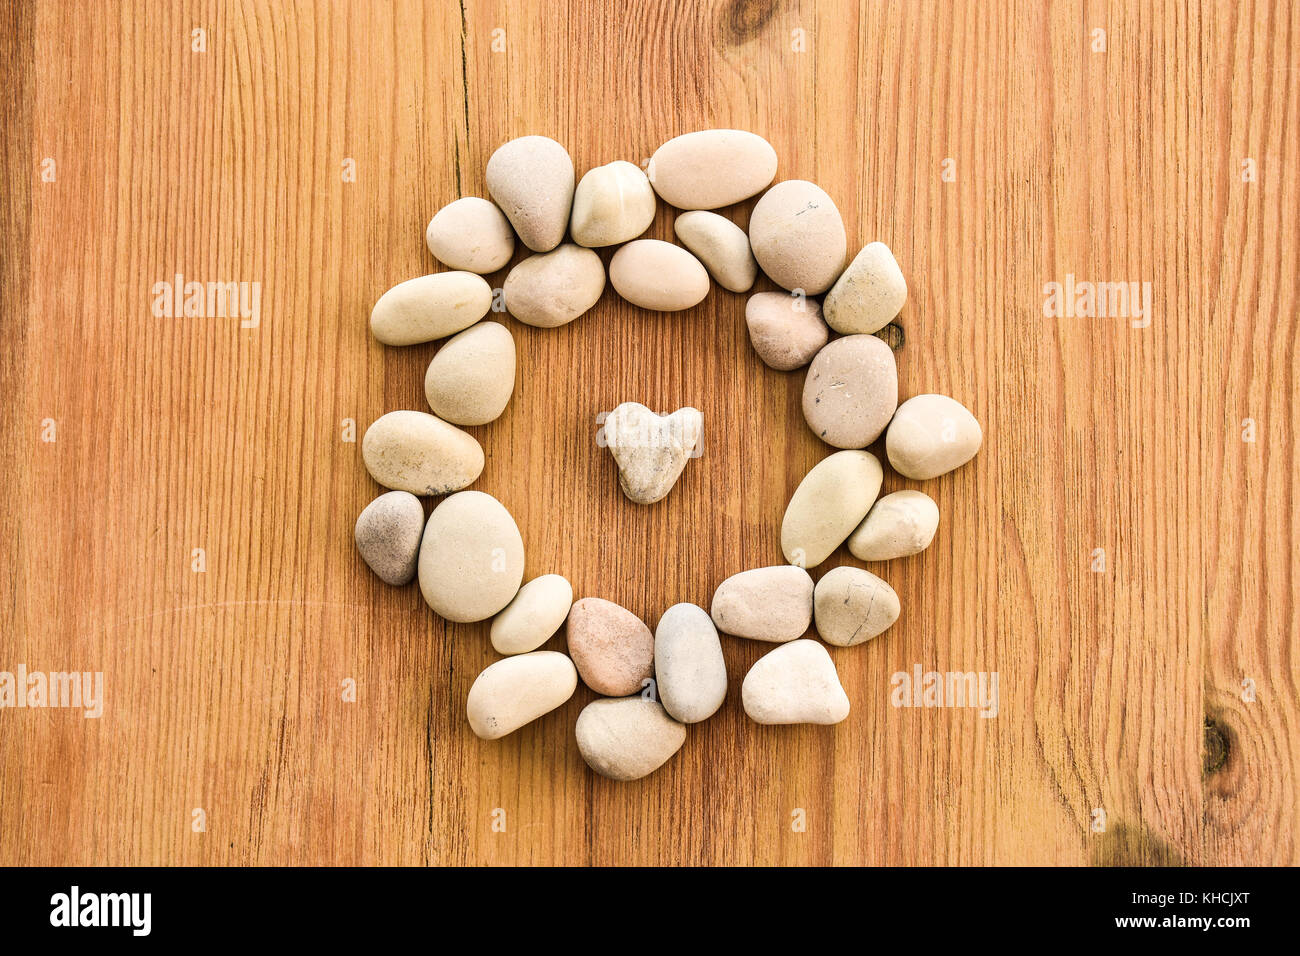 Heart pebble on warm wood - in the spirit of Hygge - Stock Image